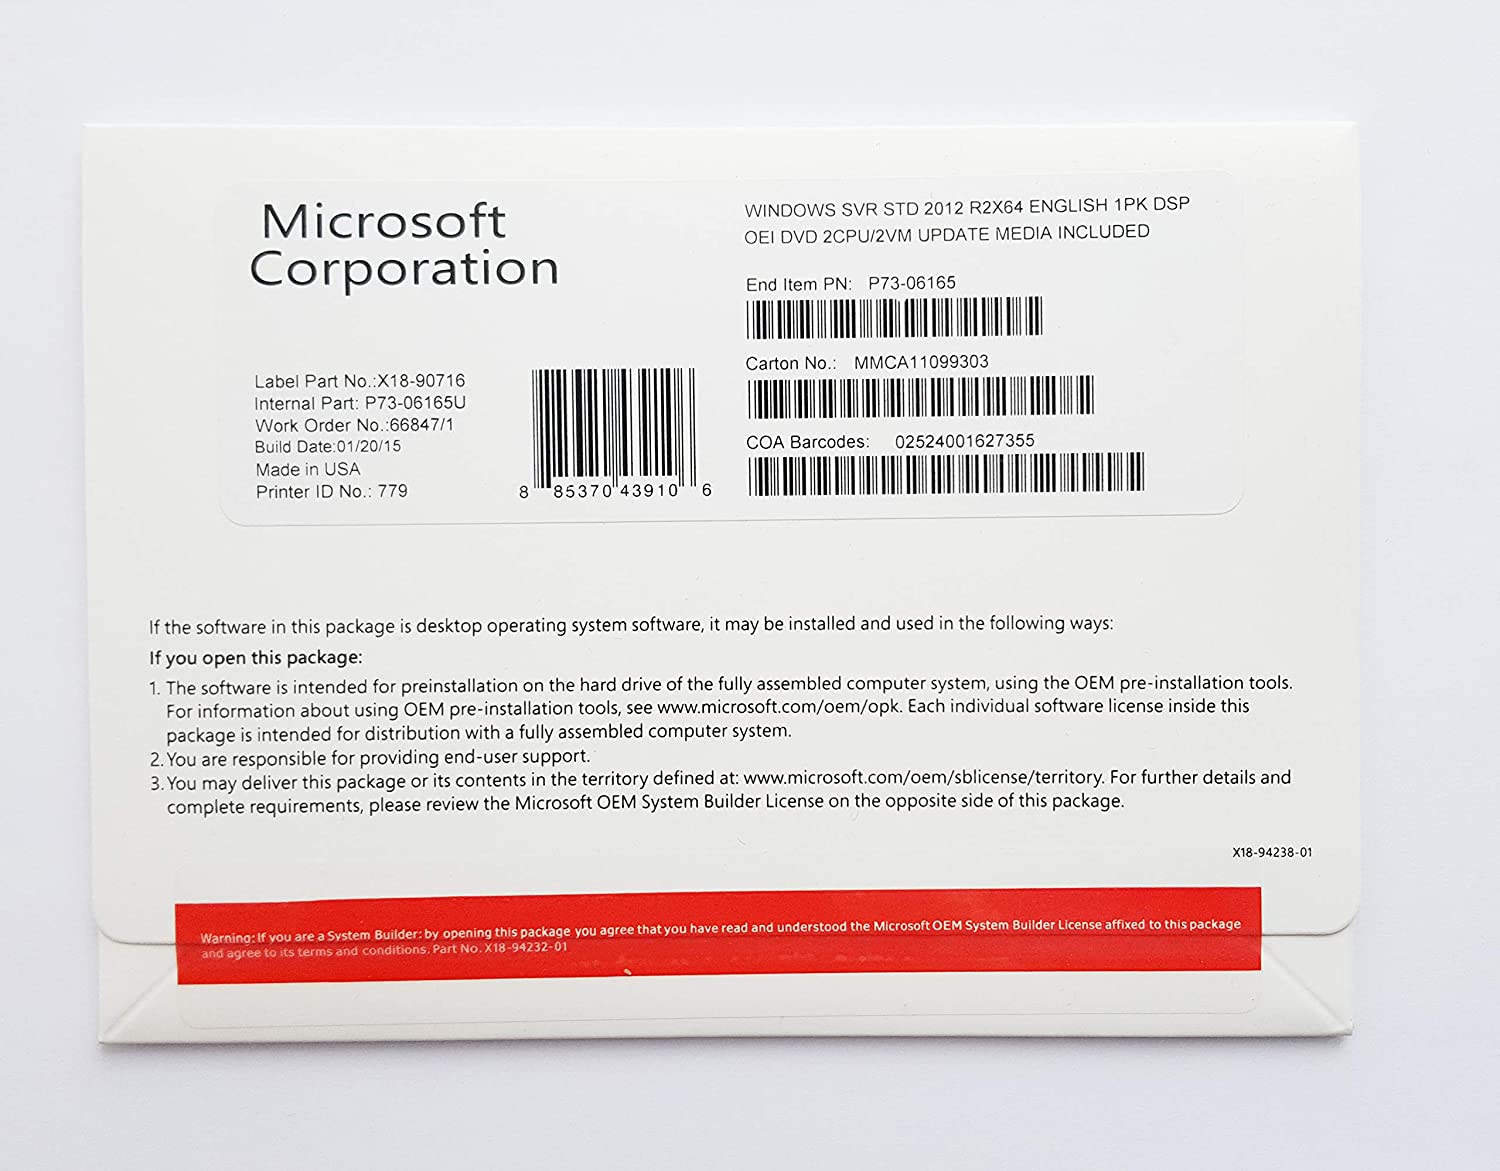 Microsoft - Windows Server Standard 2012 R2 x64 - 9595889 P73-06165